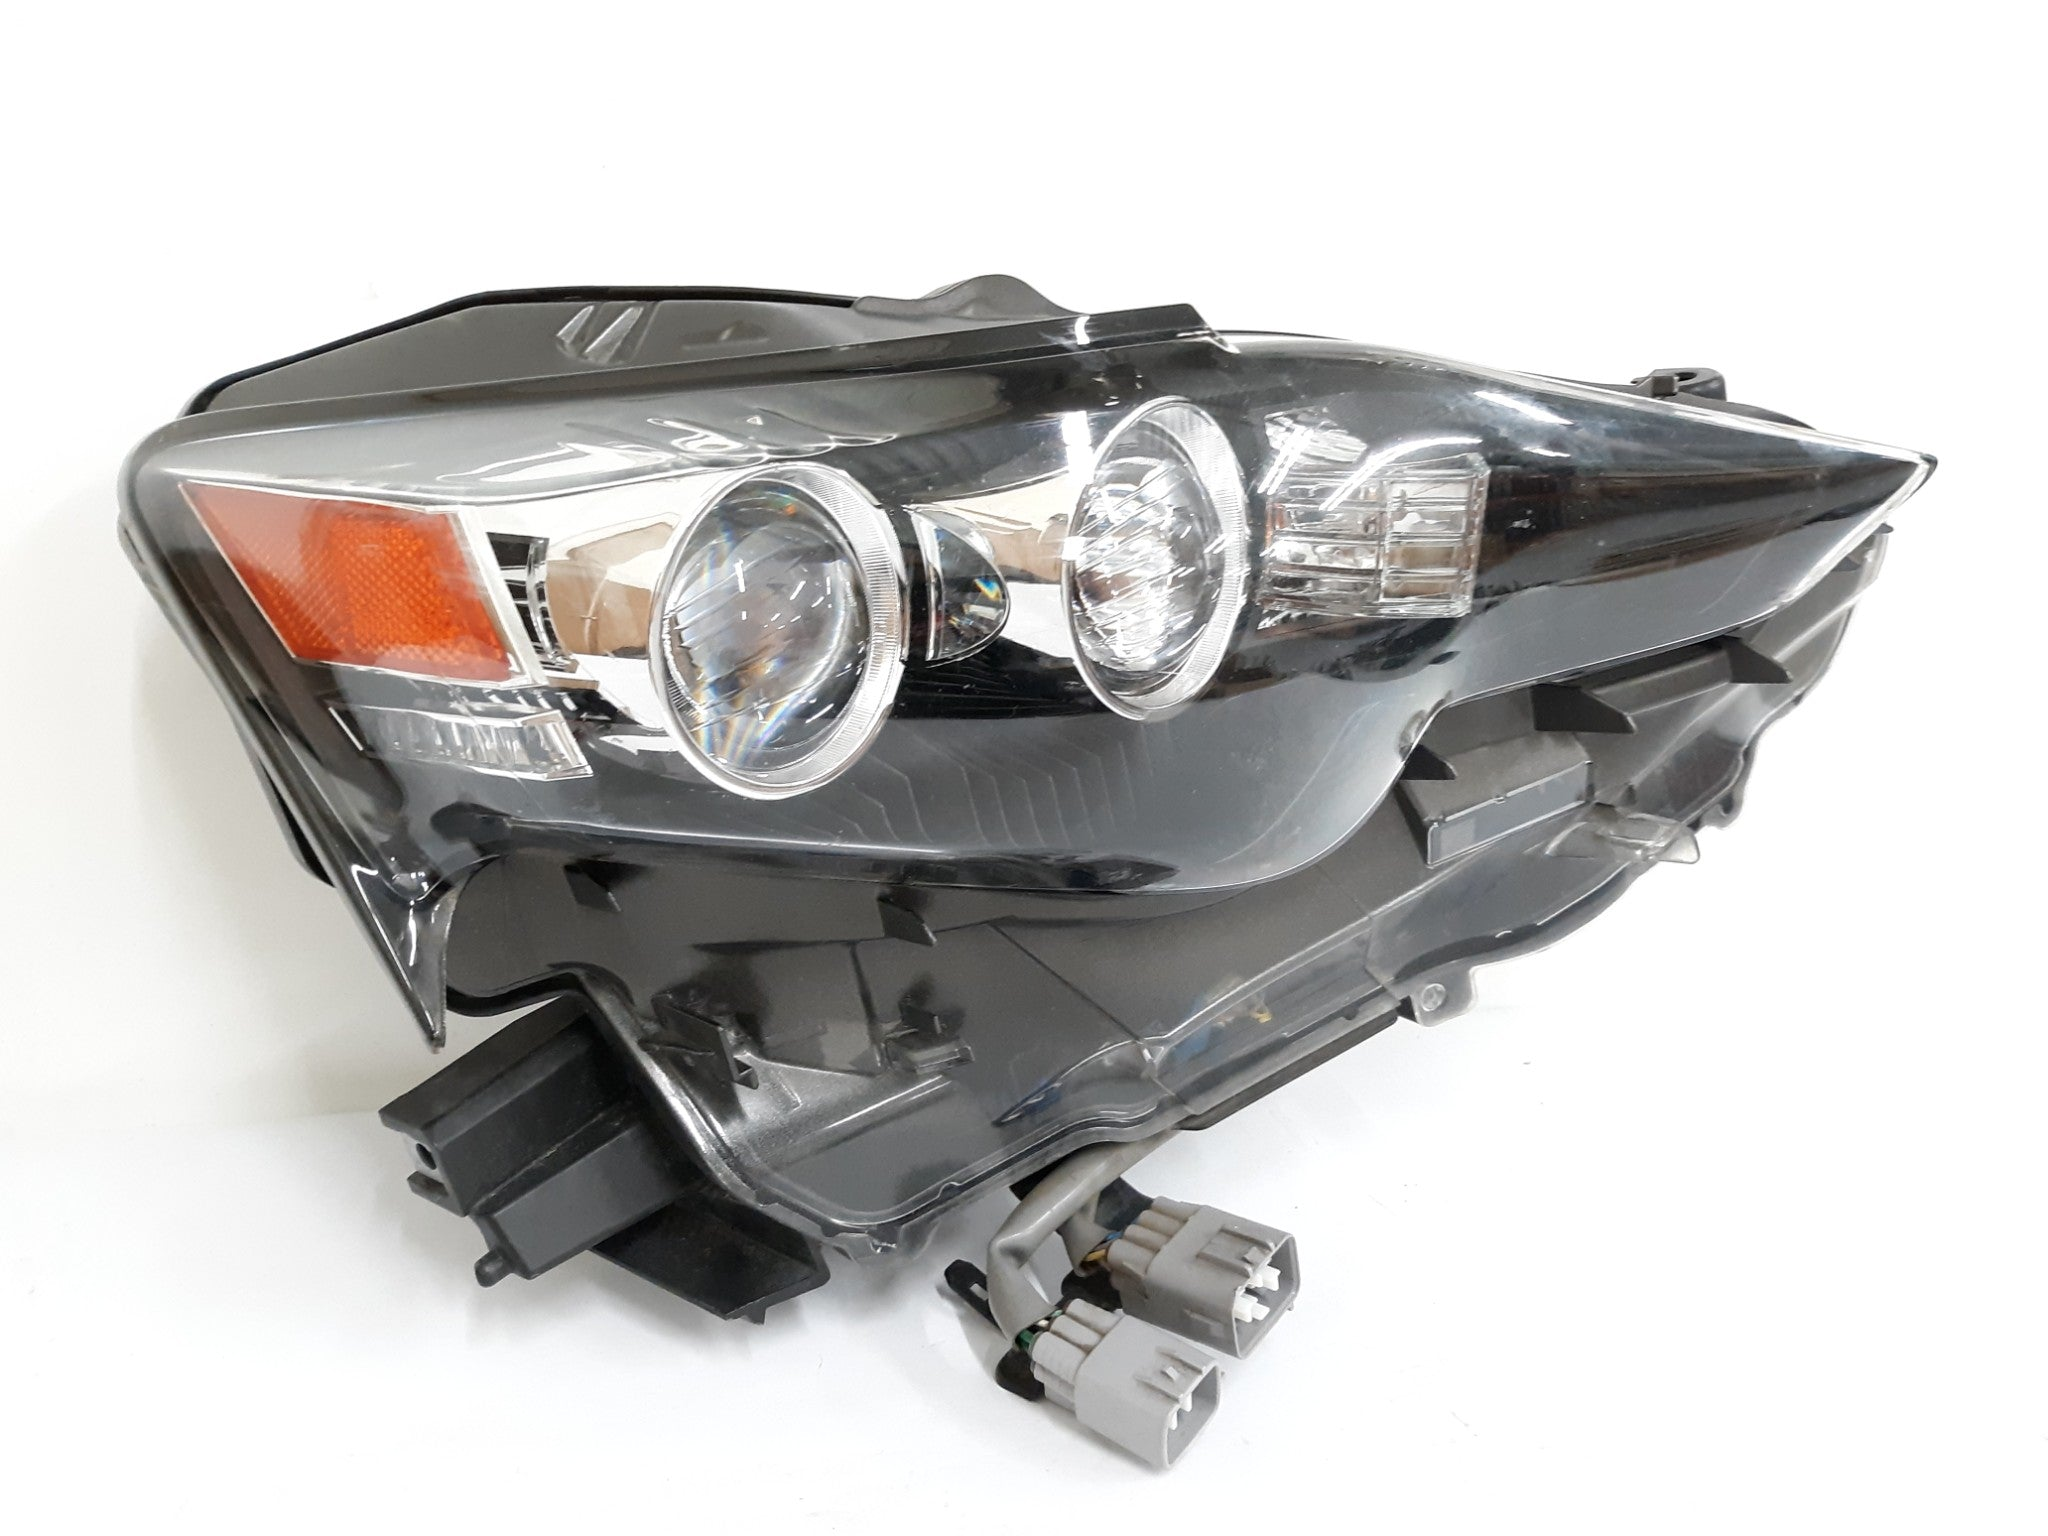 2014 - 2017 Lexus IS250 IS350 Right Headlight Passenger XENON HID LAMP OEM - Click Receive Auto Parts